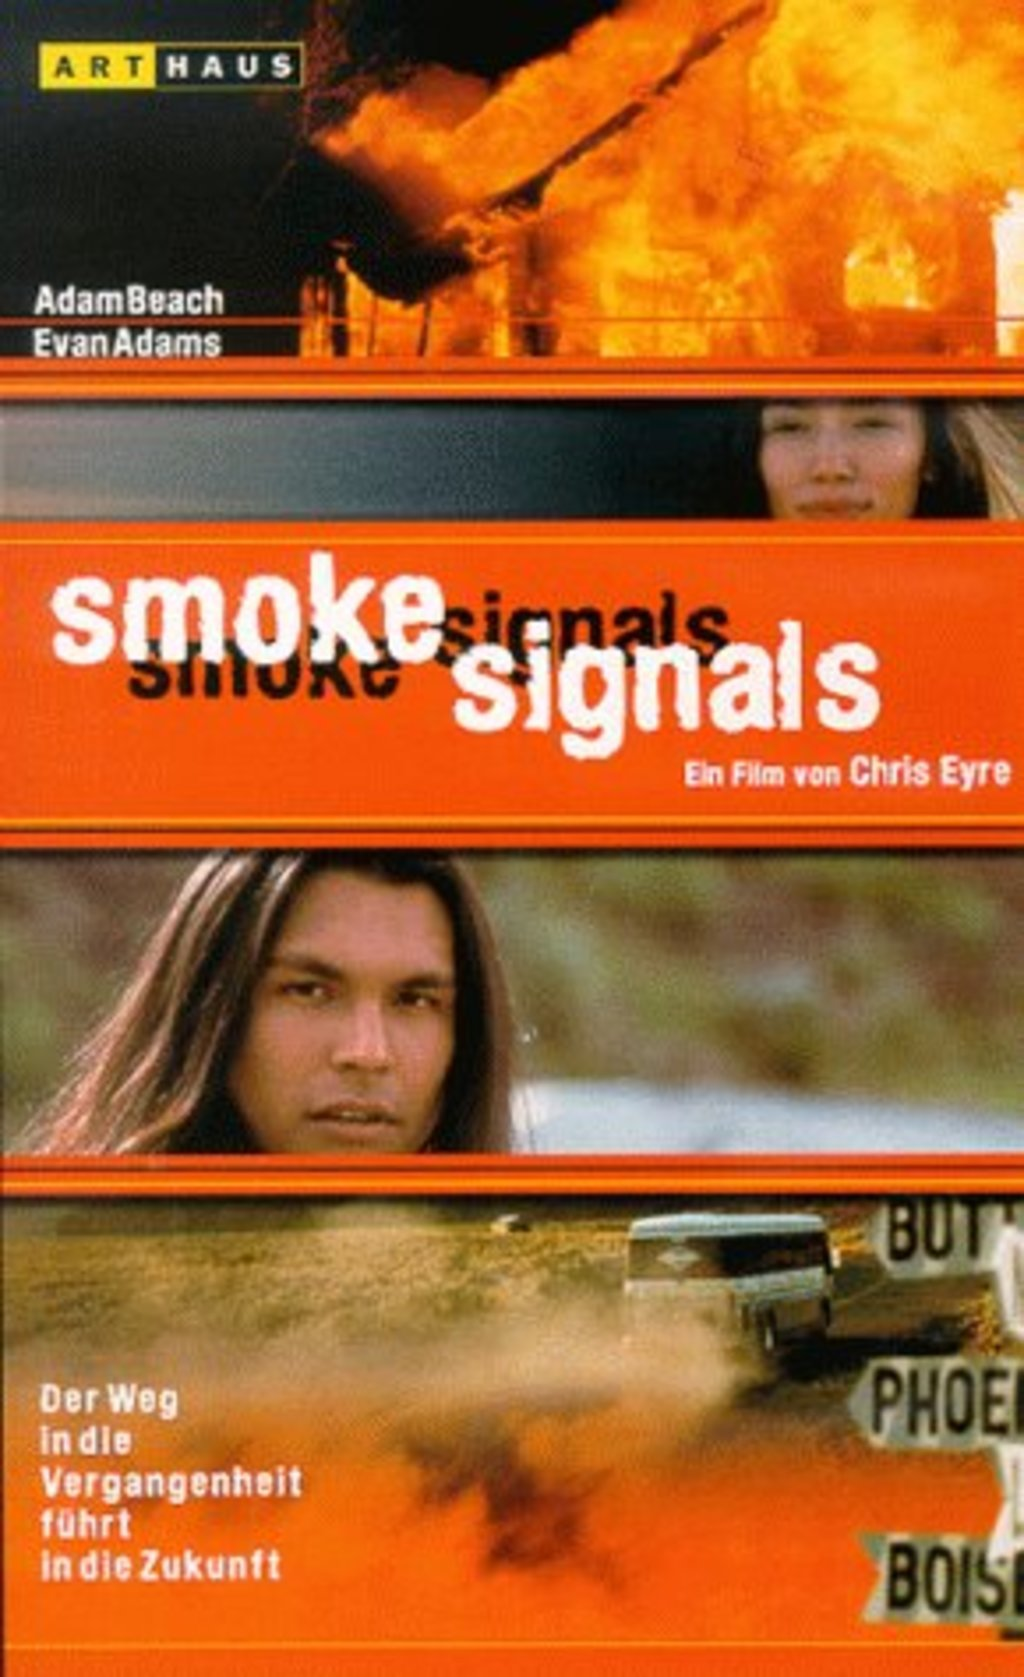 an analysis of the film technique used in the movie smoke signals Known as the first full-length feature film to be almost entirely written, directed, co-produced, and acted by native americans, smoke signals (1998) is a quintessential road movie that attempts to investigate the complex nature of indigenous relationships, cultures, and contemporary realities, especially the relationship between native.